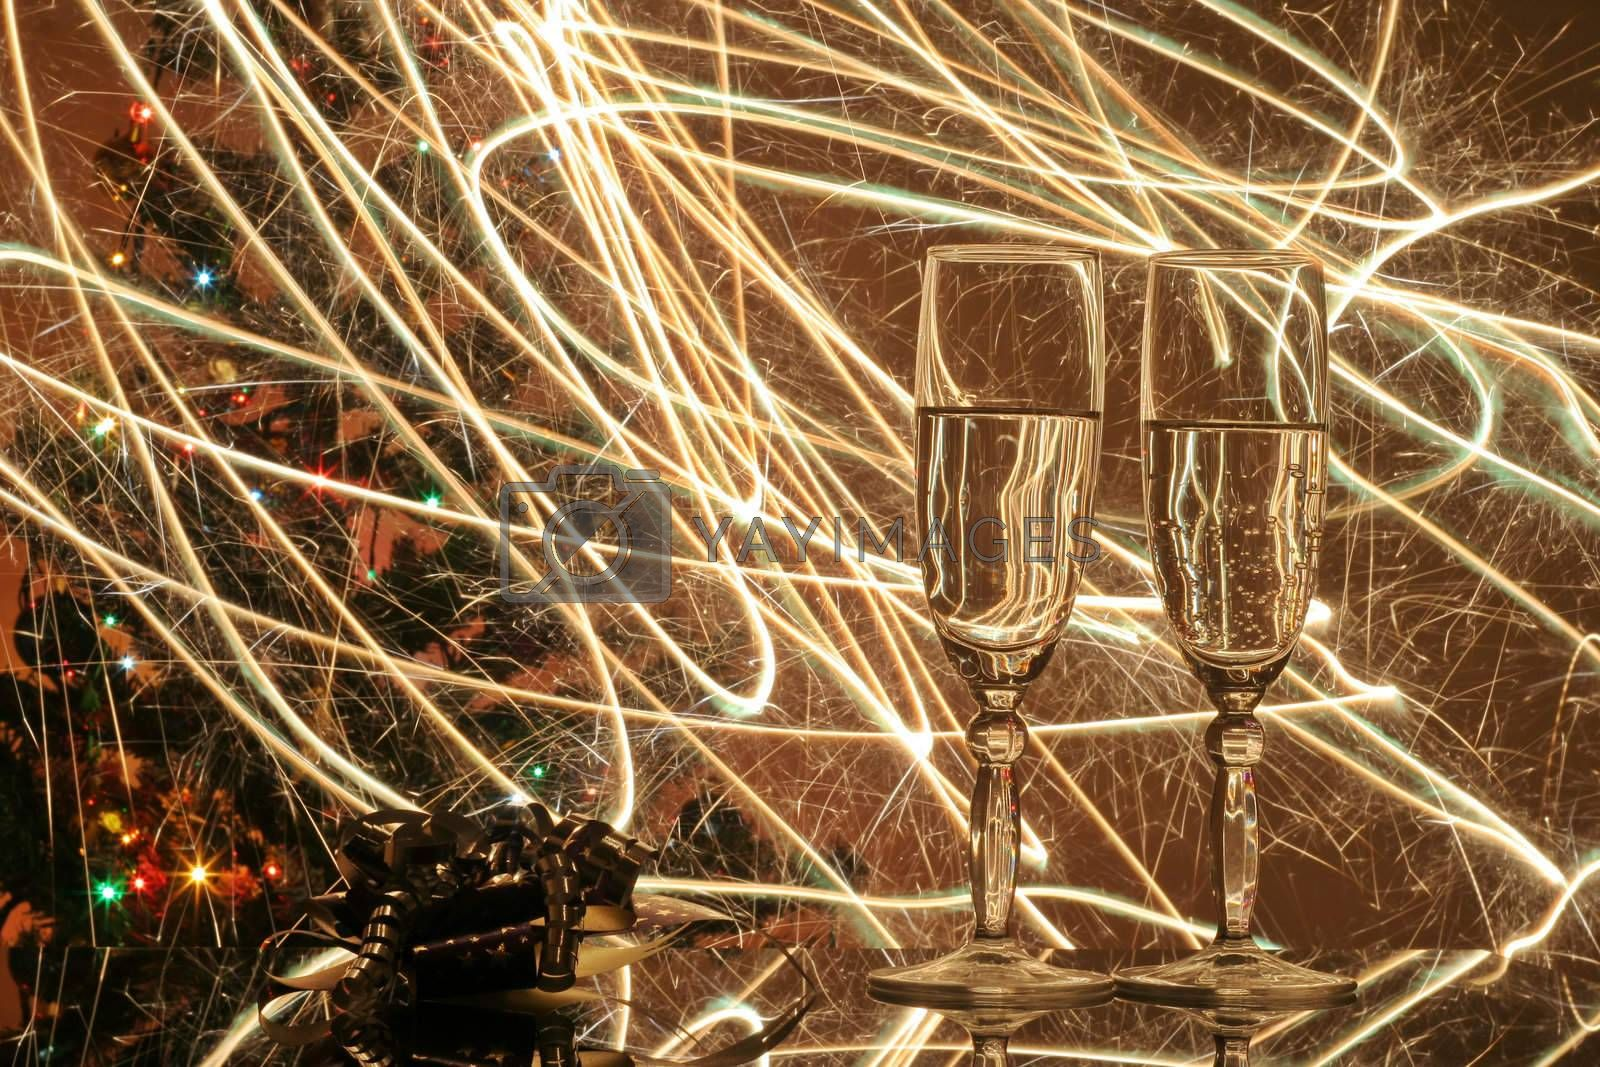 Two glasses of wine with abstract background